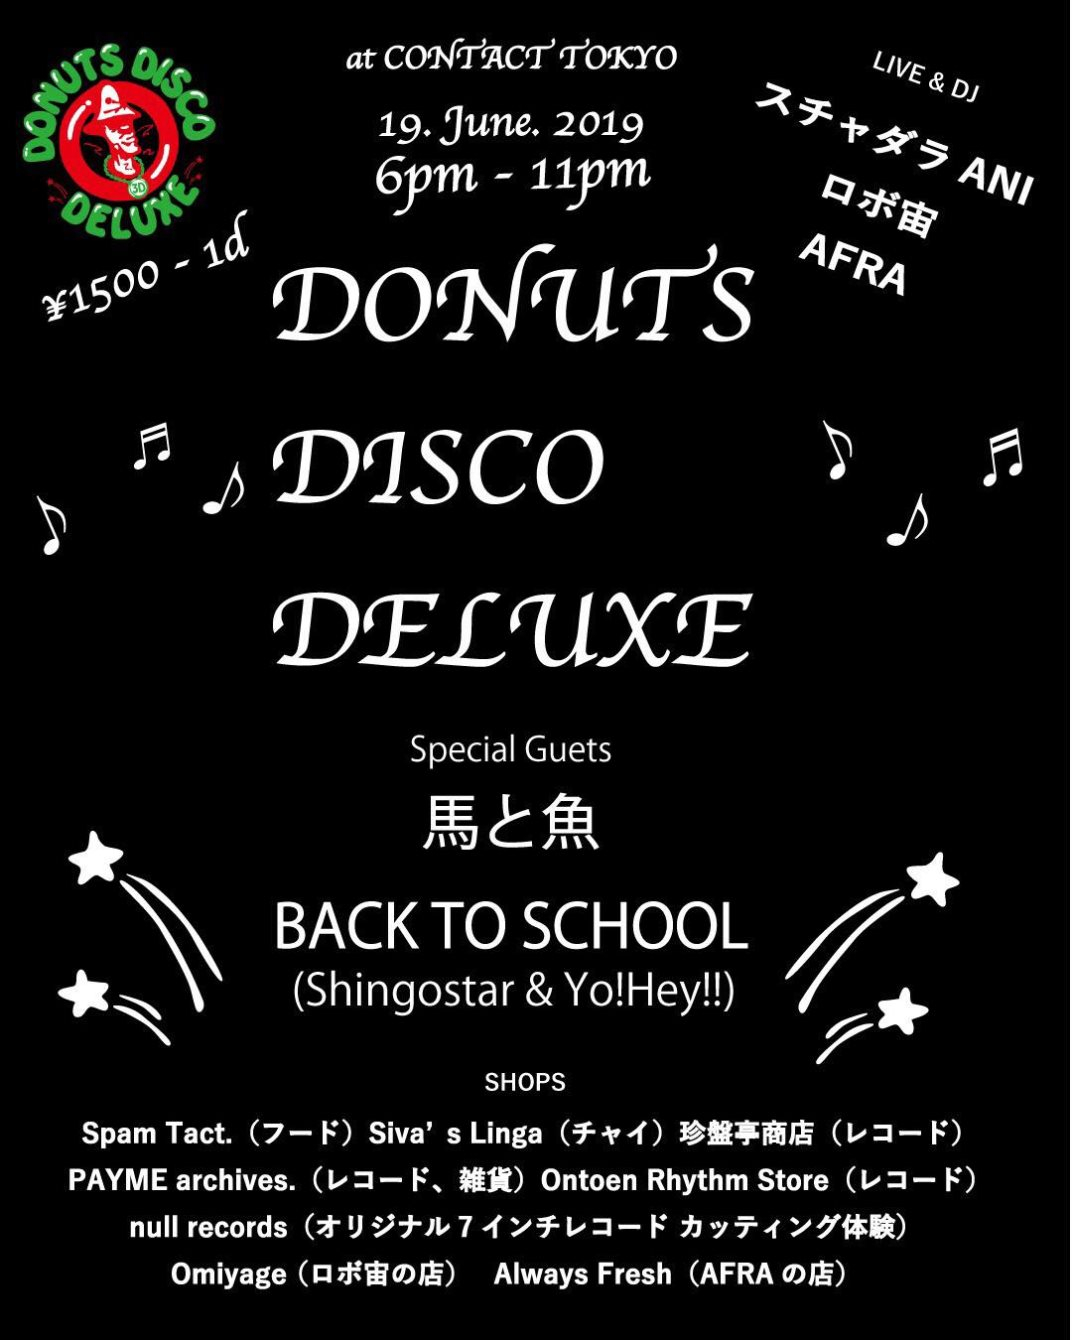 Super Plume Donuts Disco Deluxe - Flyer front